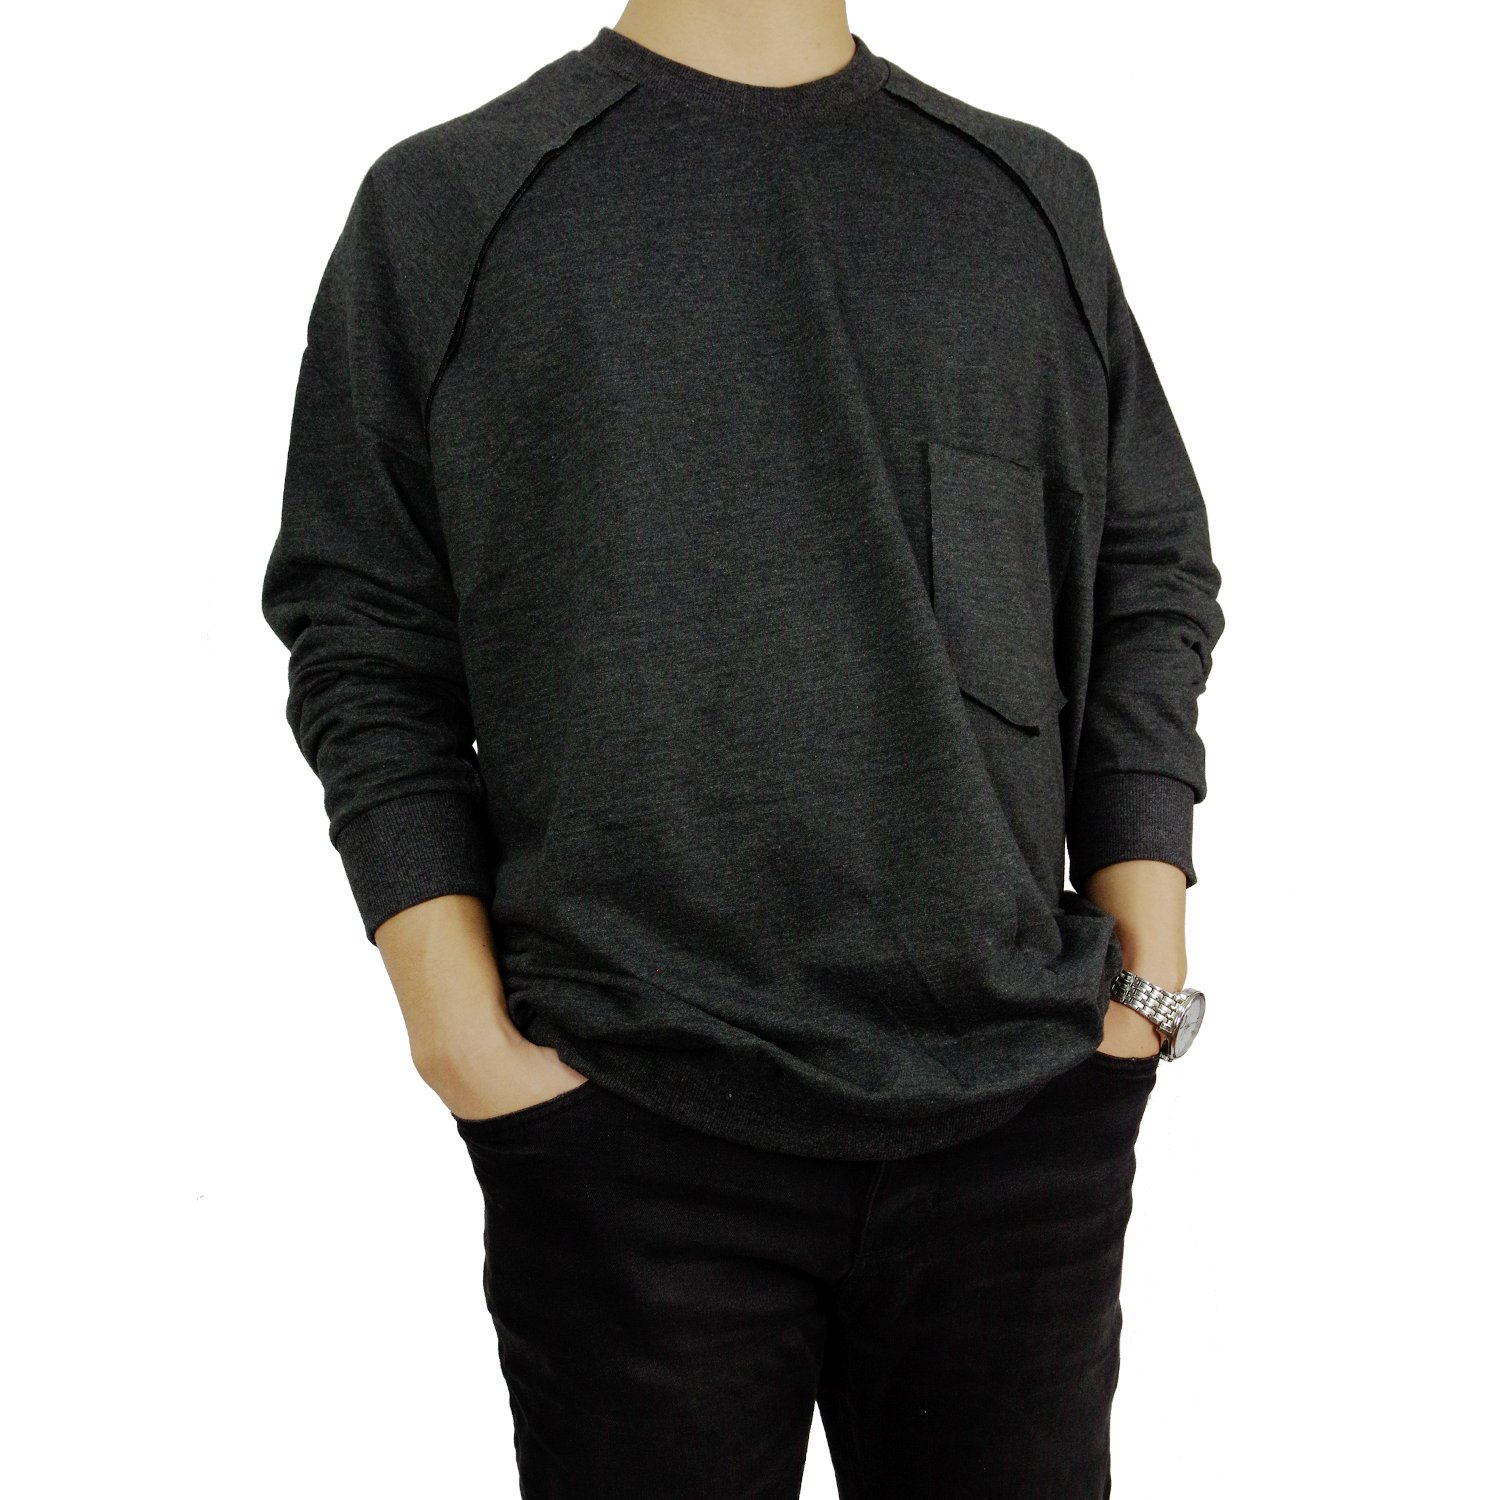 L'Essence Men's Comfy Soft Charcoal Oversized Cotton Sweater Crew Neck, LSE1154